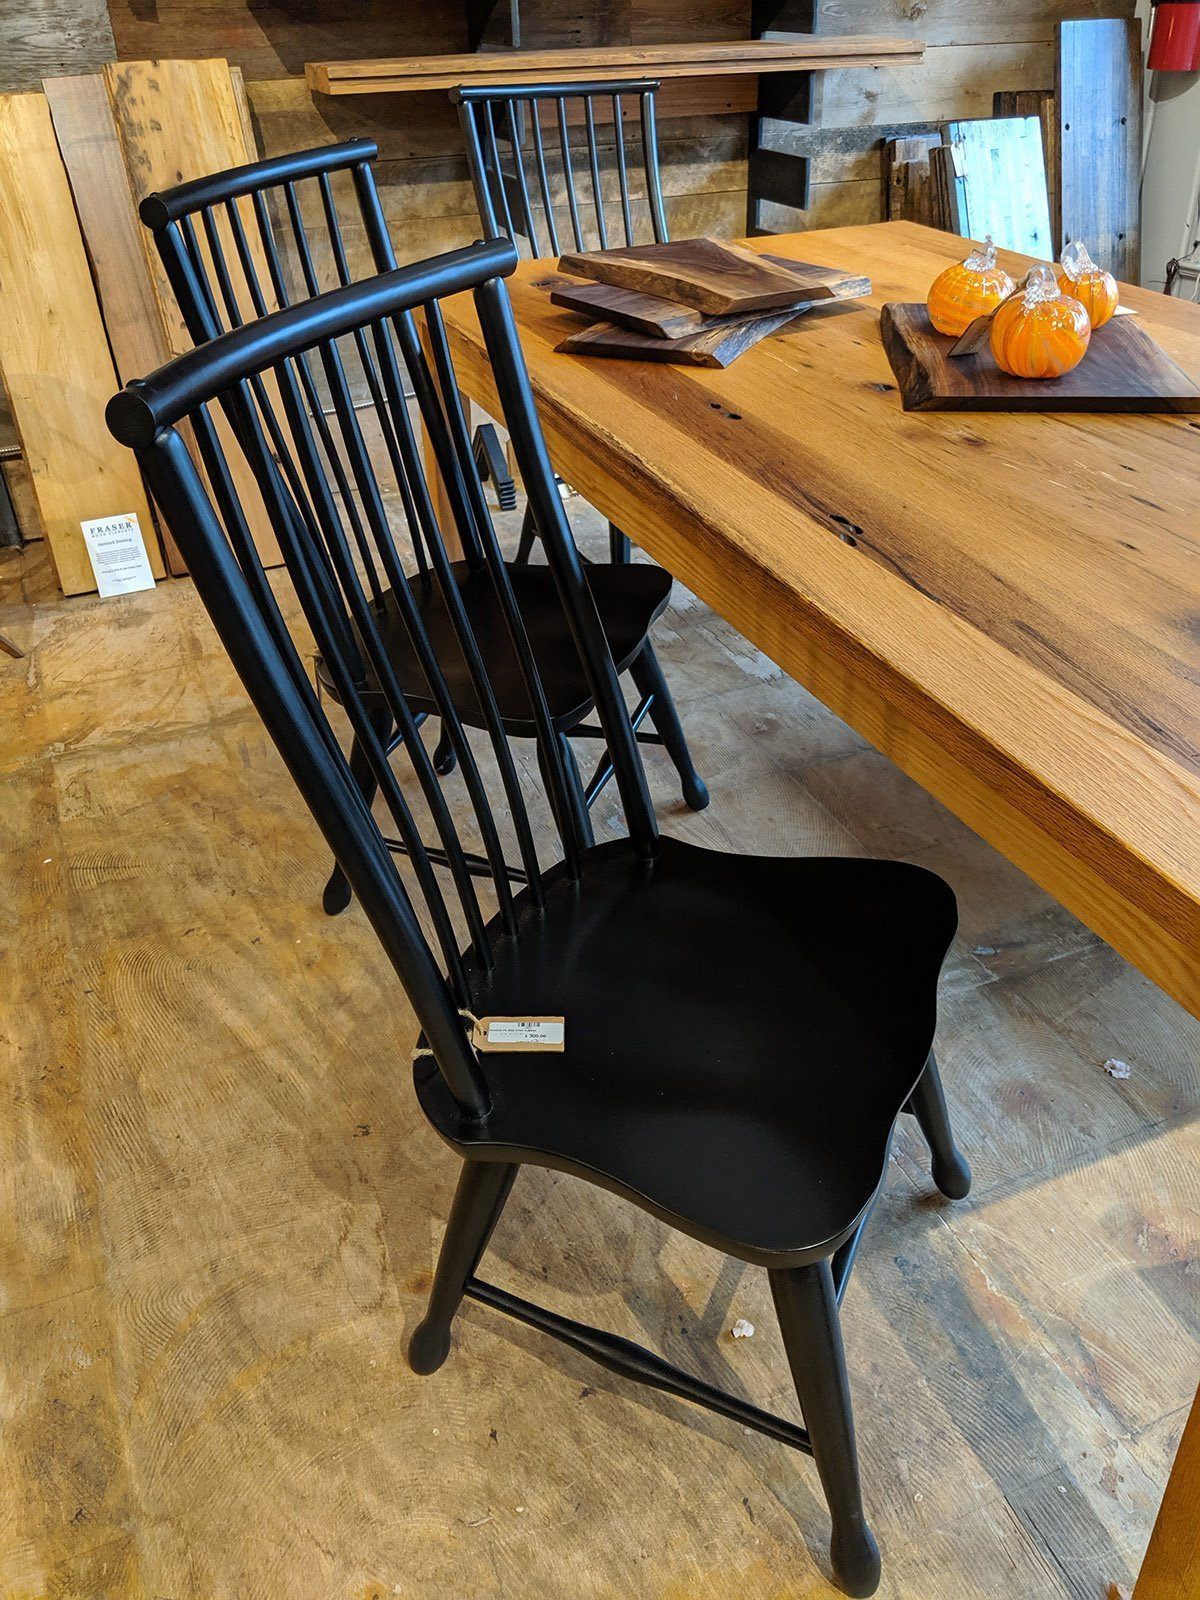 NEW Product Alert! Farm House Chairs Arrive at Fraser Wood Elements!